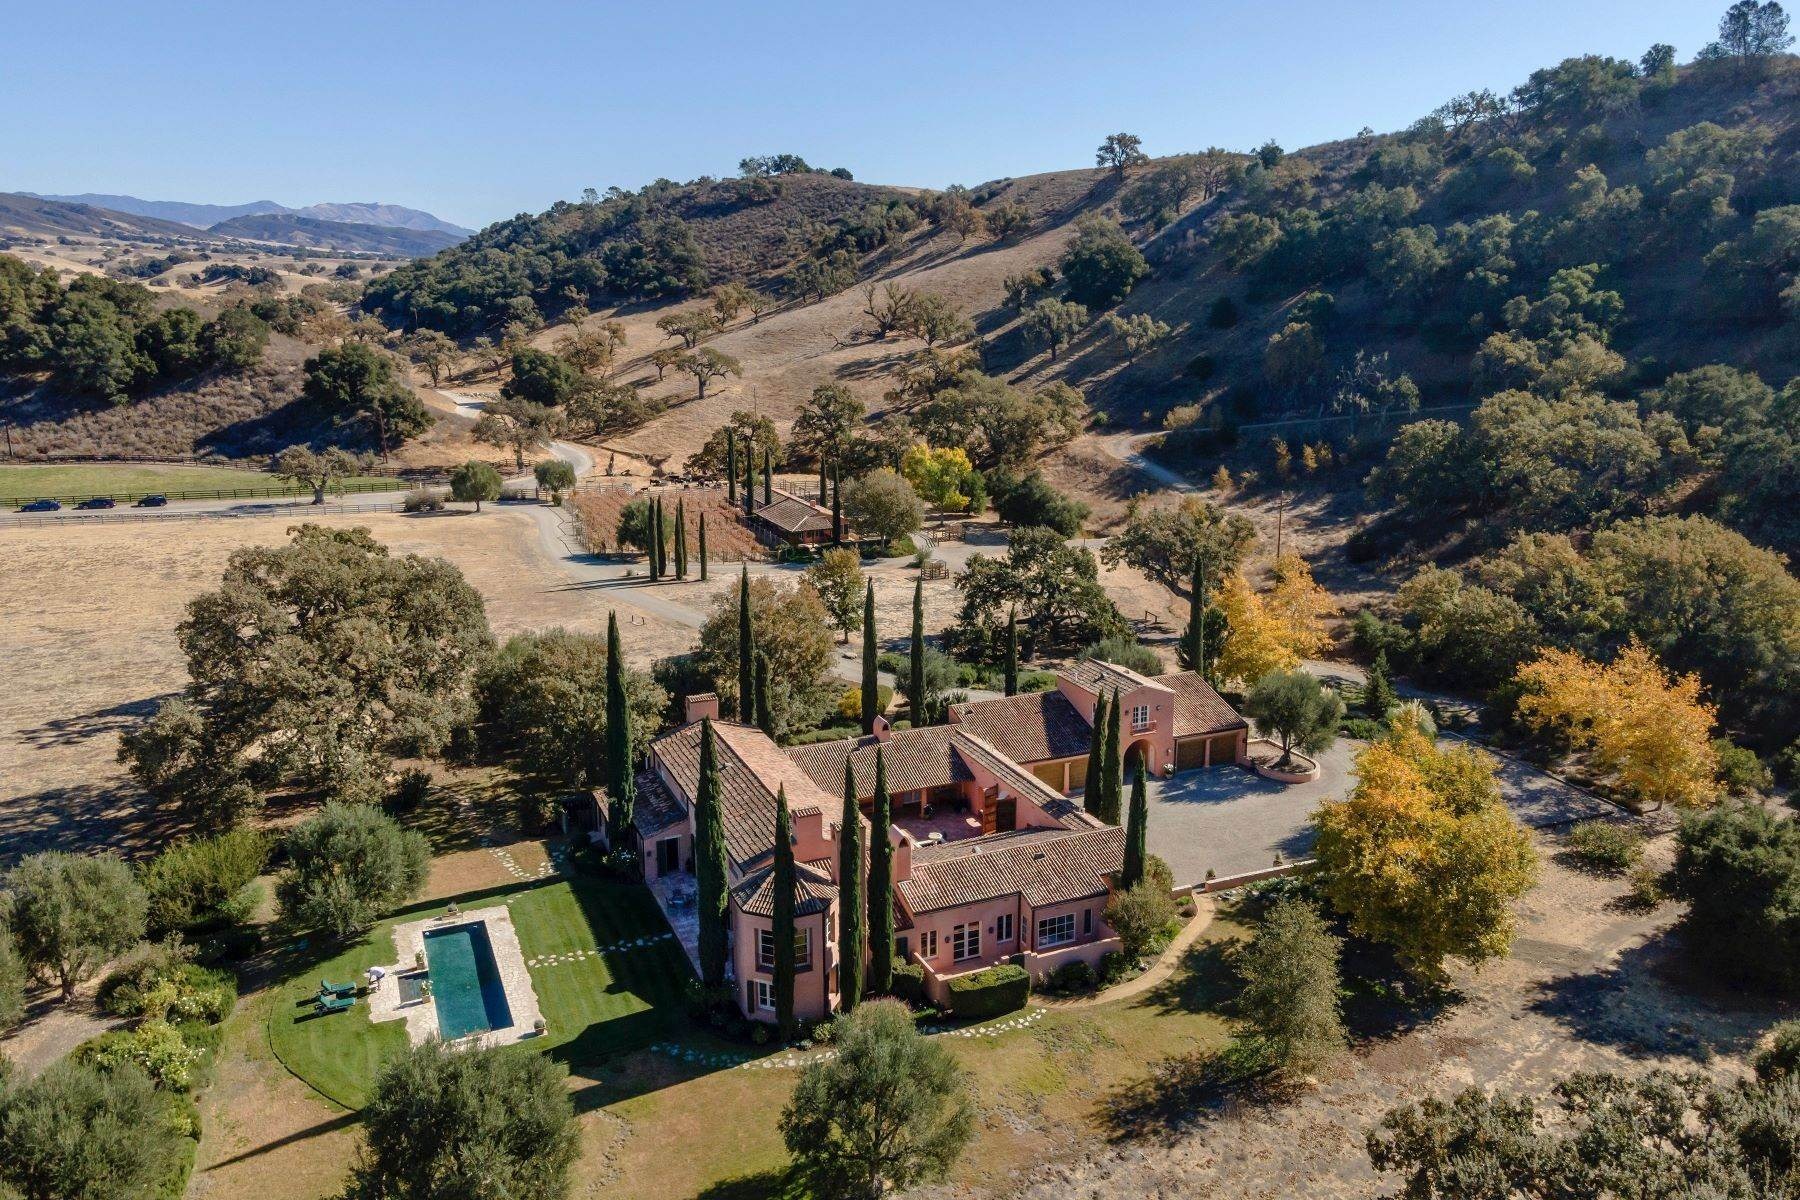 Single Family Homes for Sale at Happy Canyon Villa on 102+/- acres 1155 Alisos Road Santa Ynez, California 93460 United States